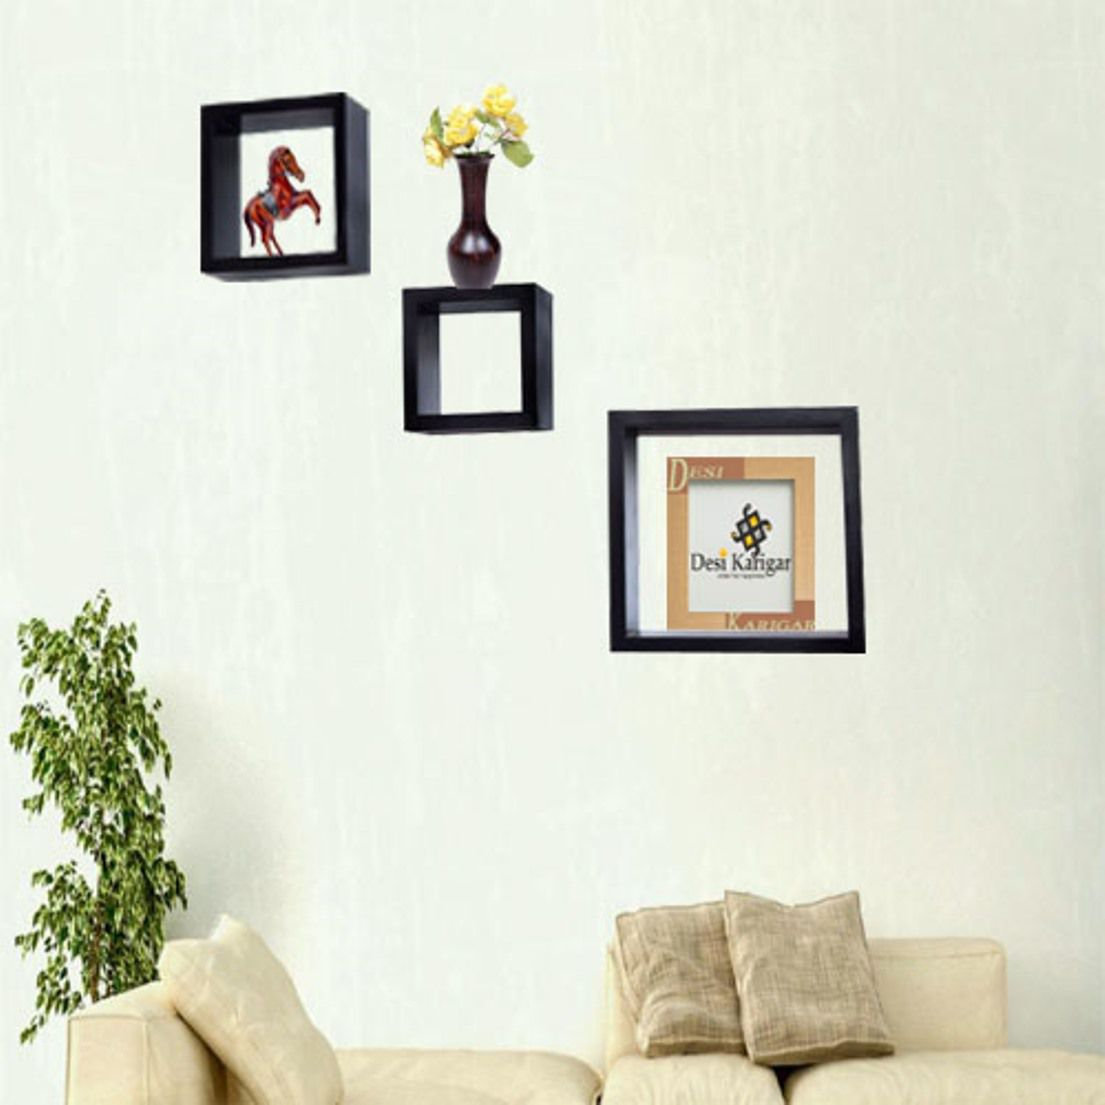 desi karigar wall mount shelves square shape set of 3 wall shelves rh snapdeal com 3 small wall shelves 3 tier wall shelves